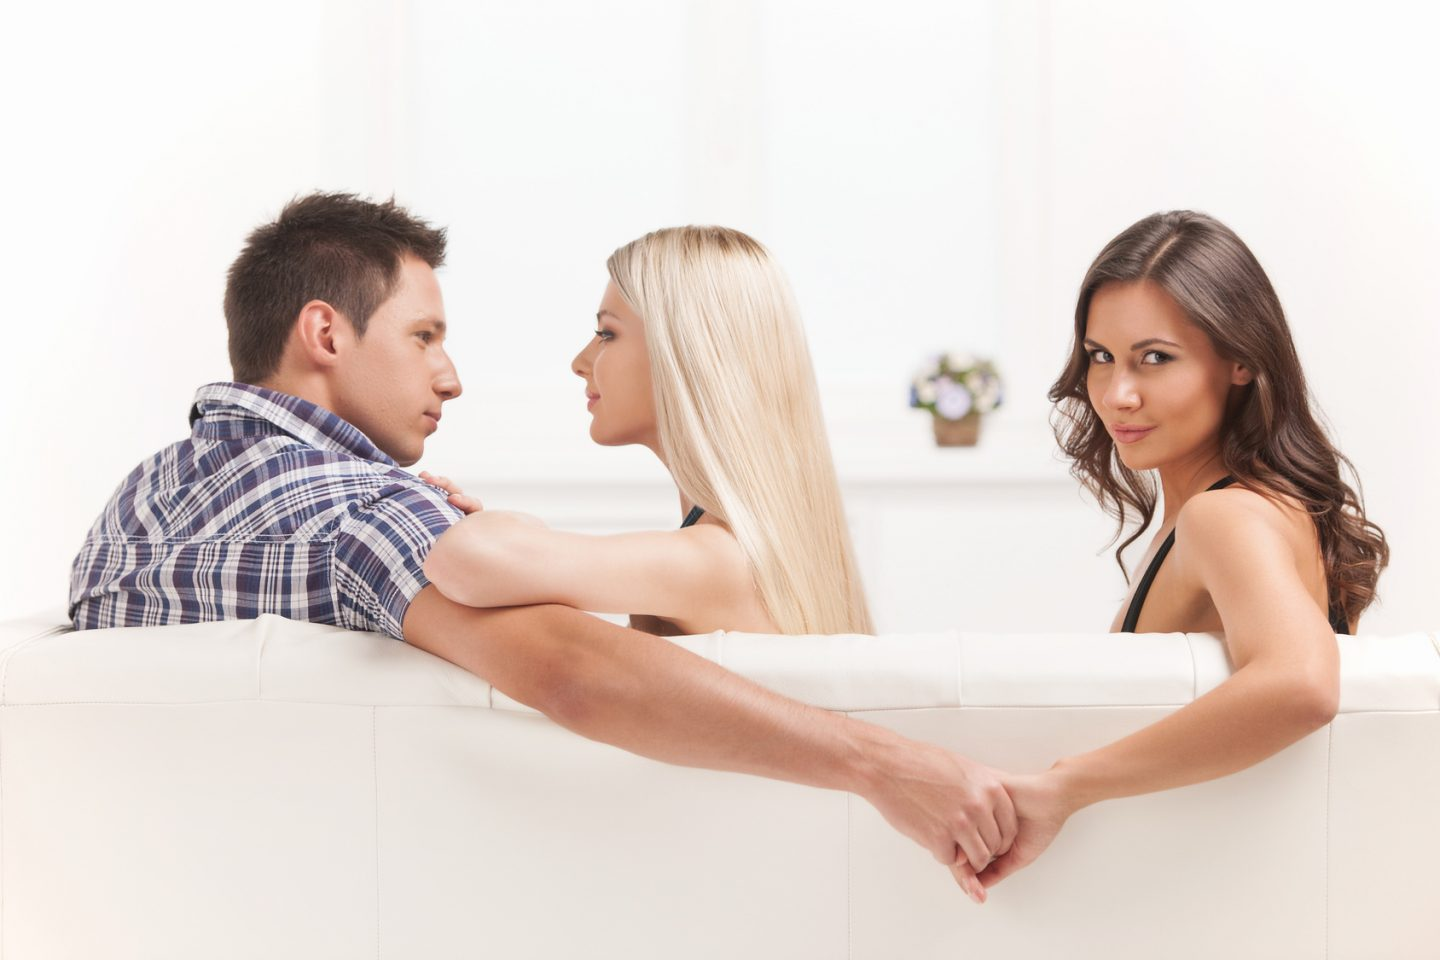 7 Facts About Cheating You Need to Know